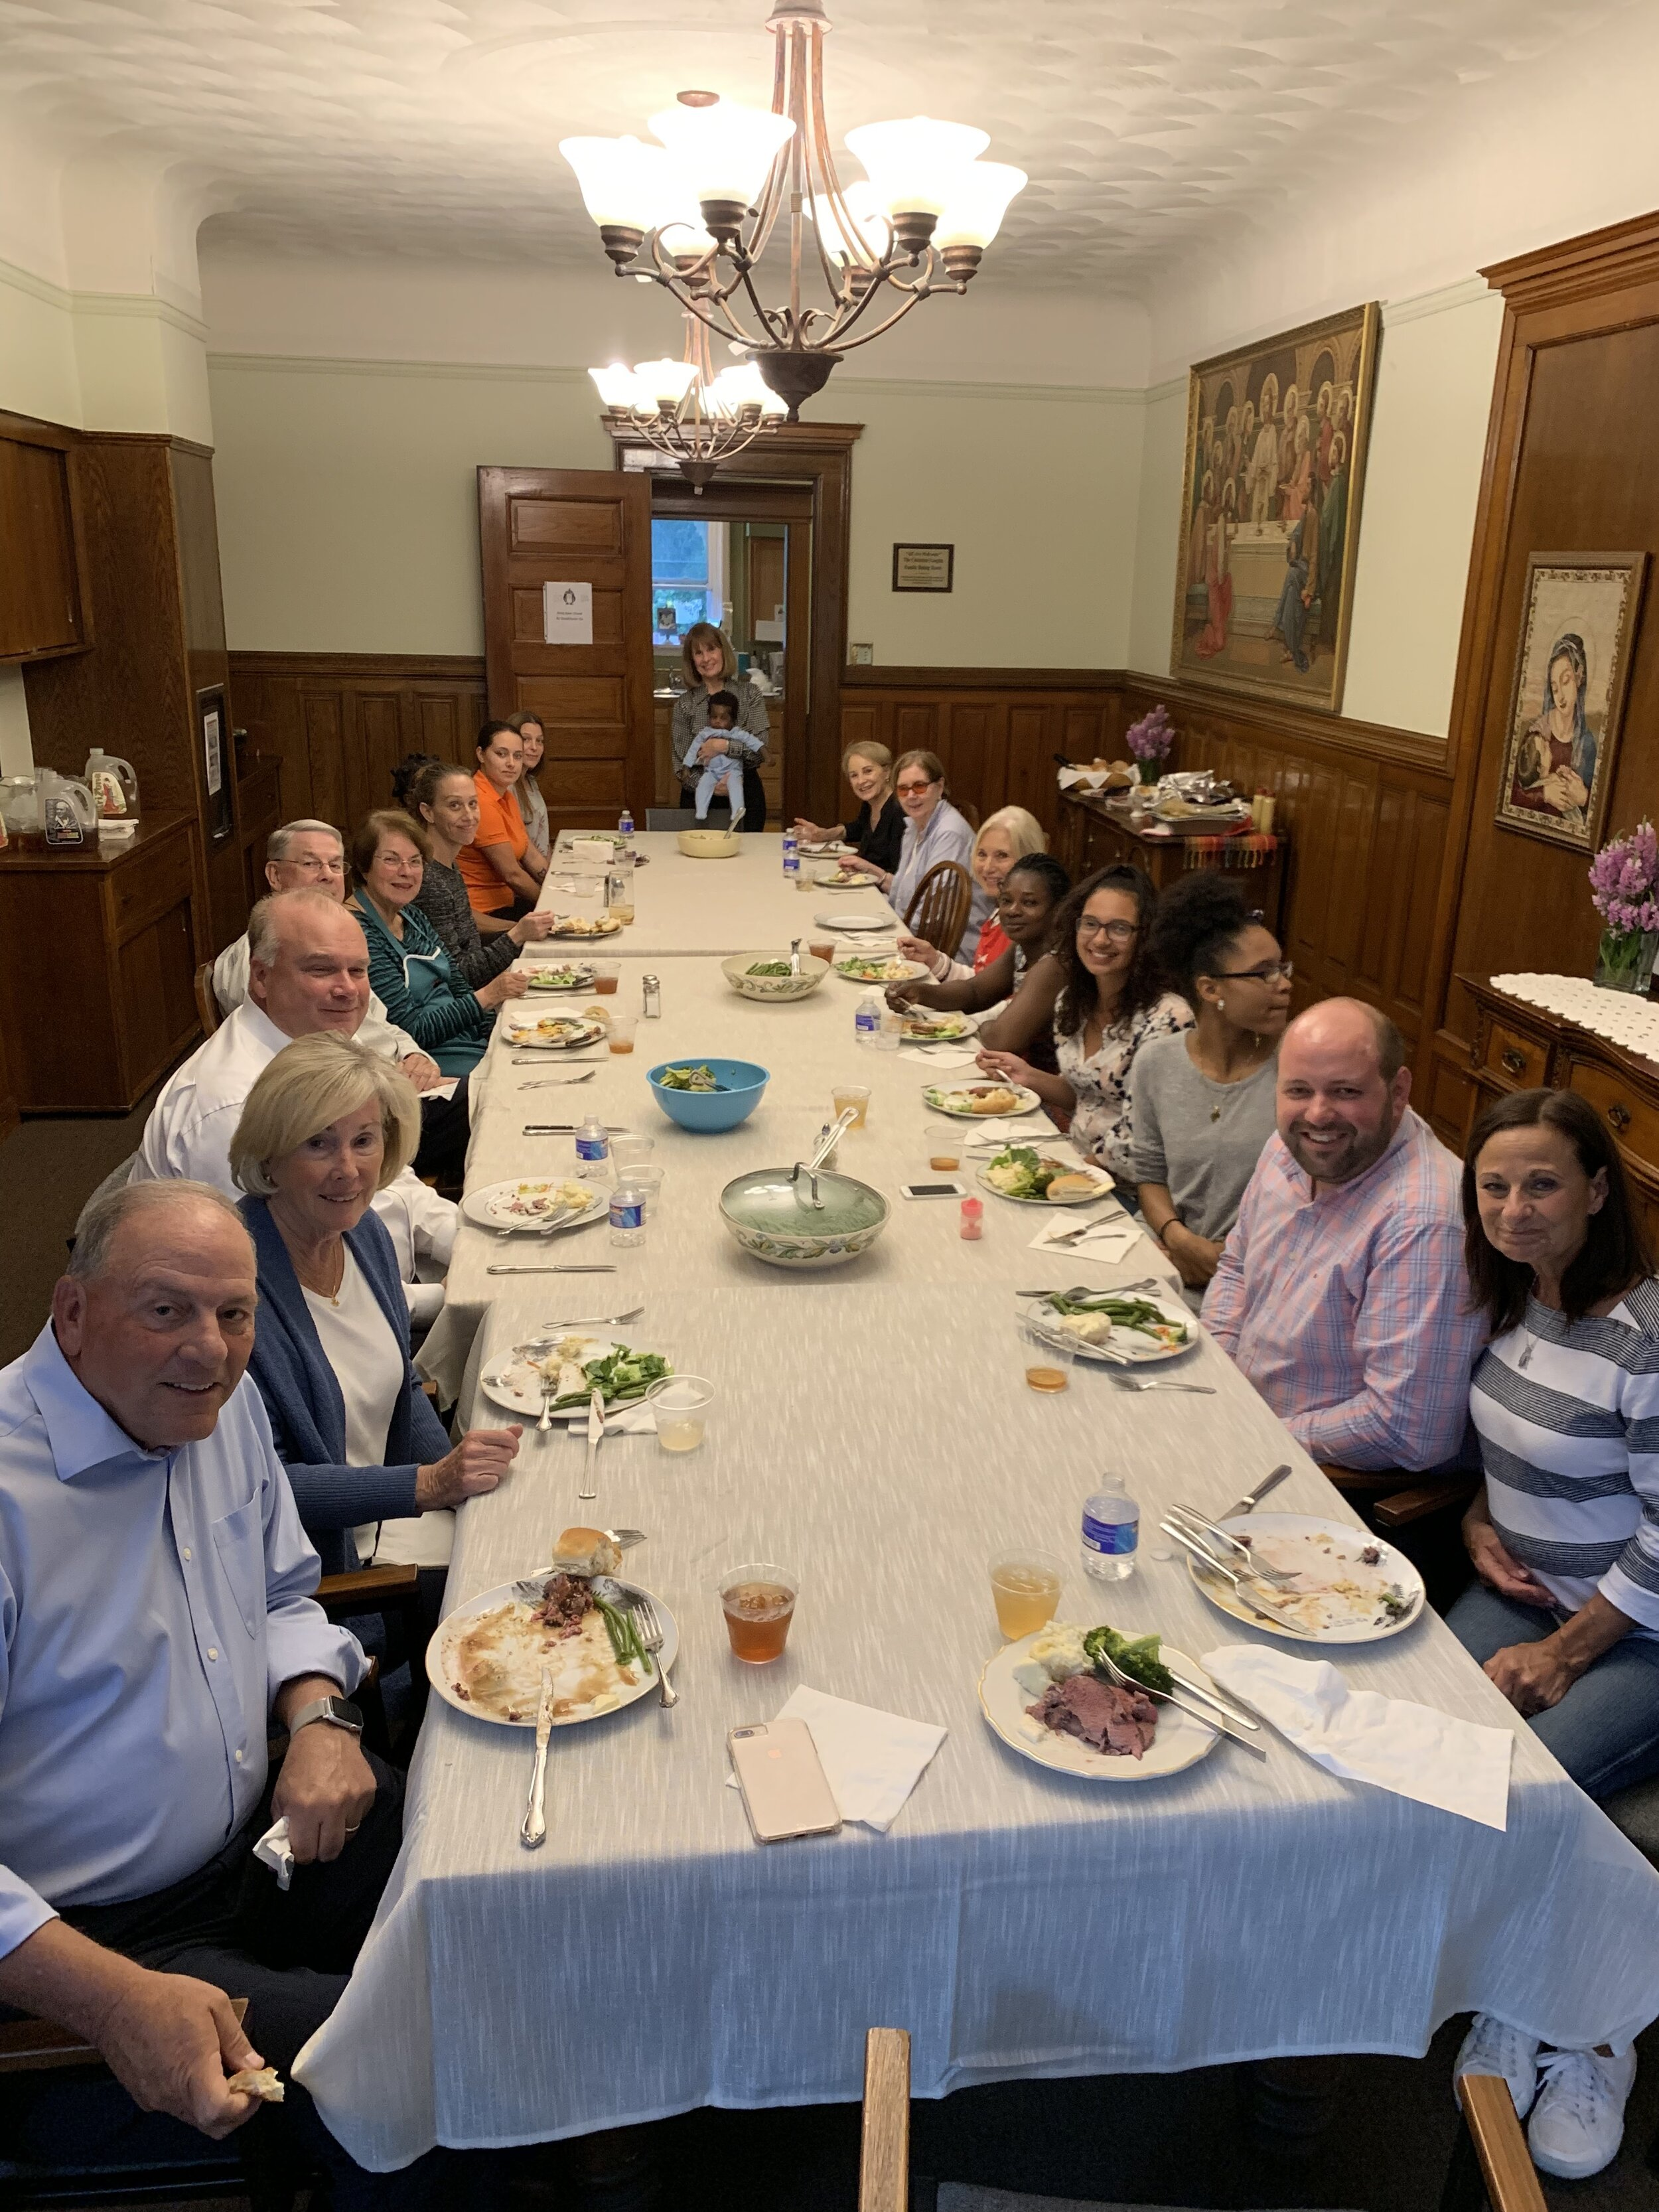 The Knights and Dames of the Order of Malta prepared a spectacular dinner for all of us at Joseph's House!